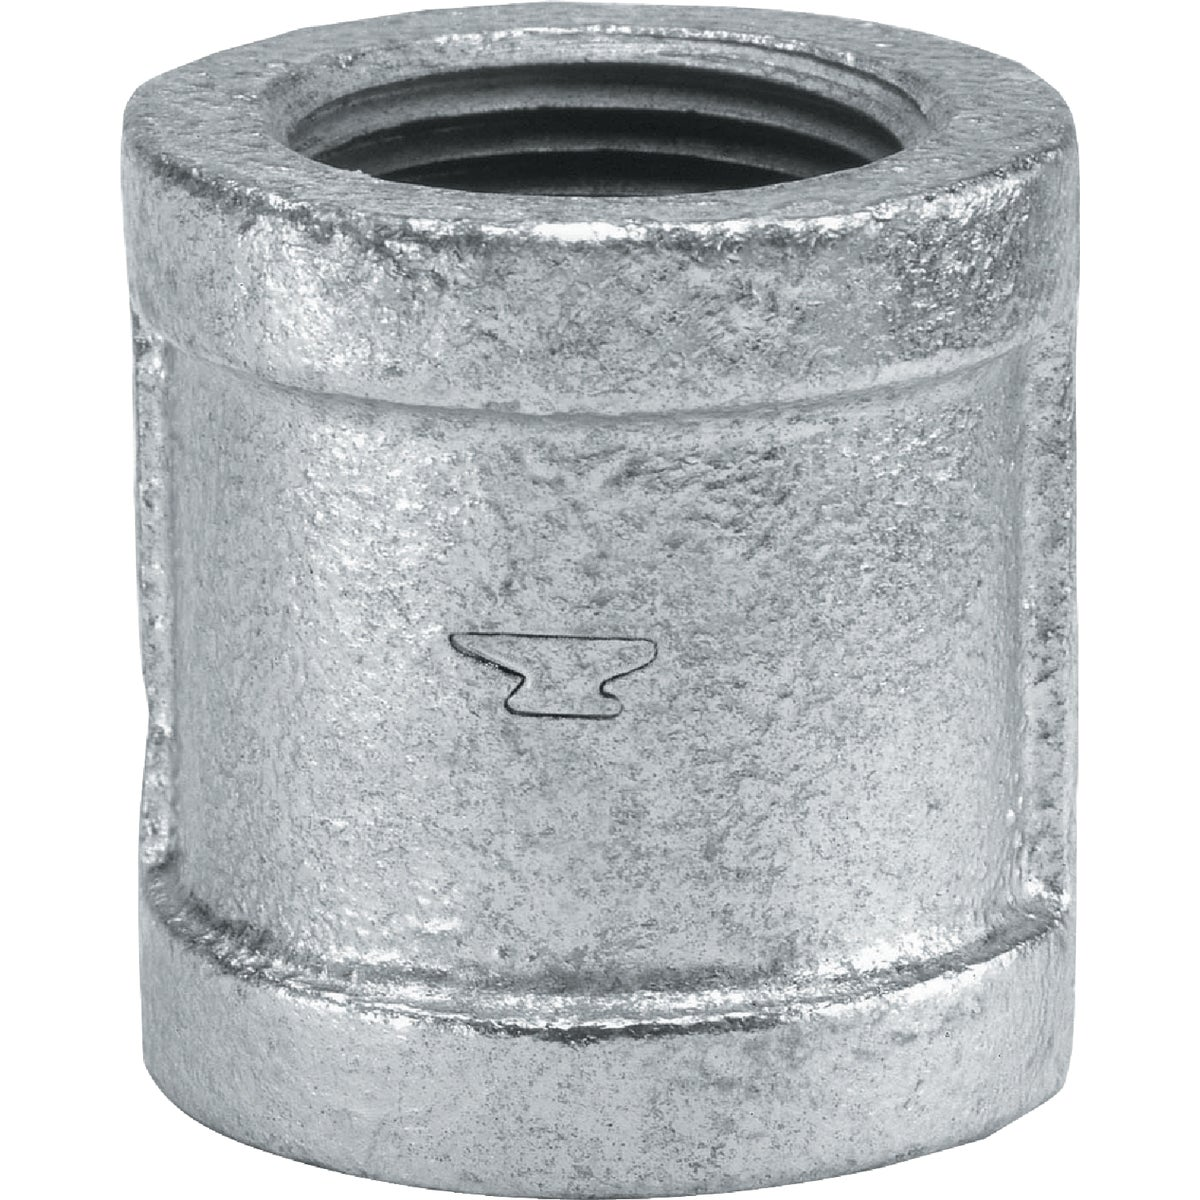 "3/4"" GALV COUPLING - 8700133609 by Anvil International"